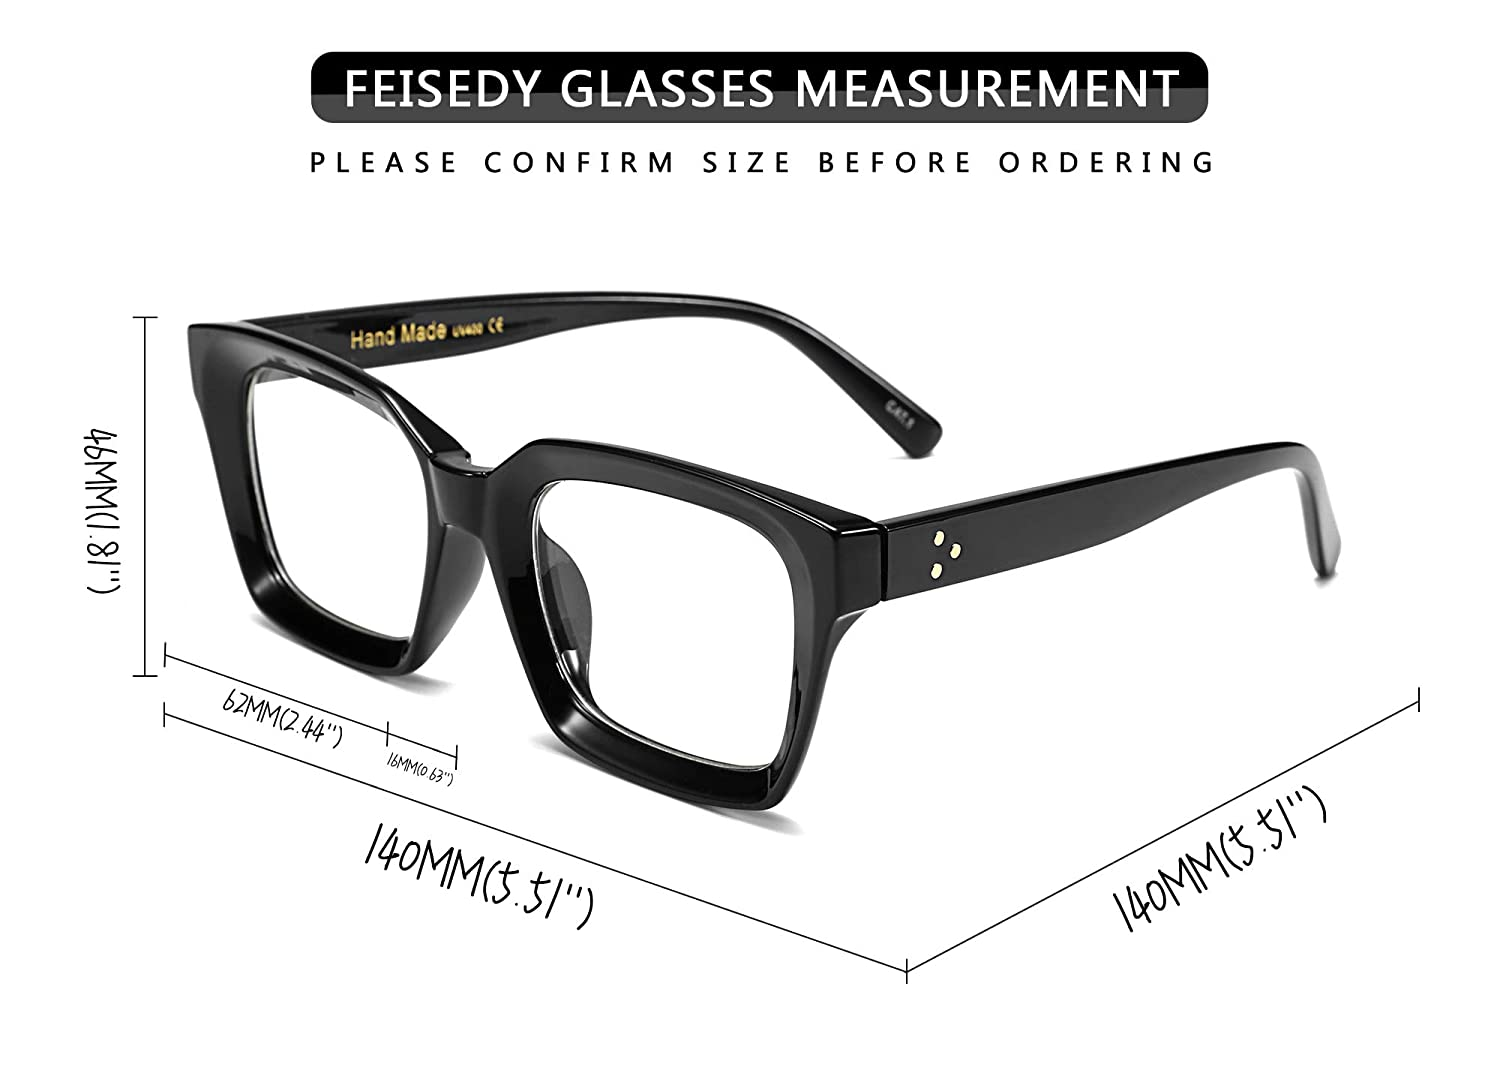 c0ea0c7a2c5 Amazon.com  FEISEDY Classic Oprah Square Large Eyewear Non-prescription  Thick Glasses Frame for Women B2461  Clothing